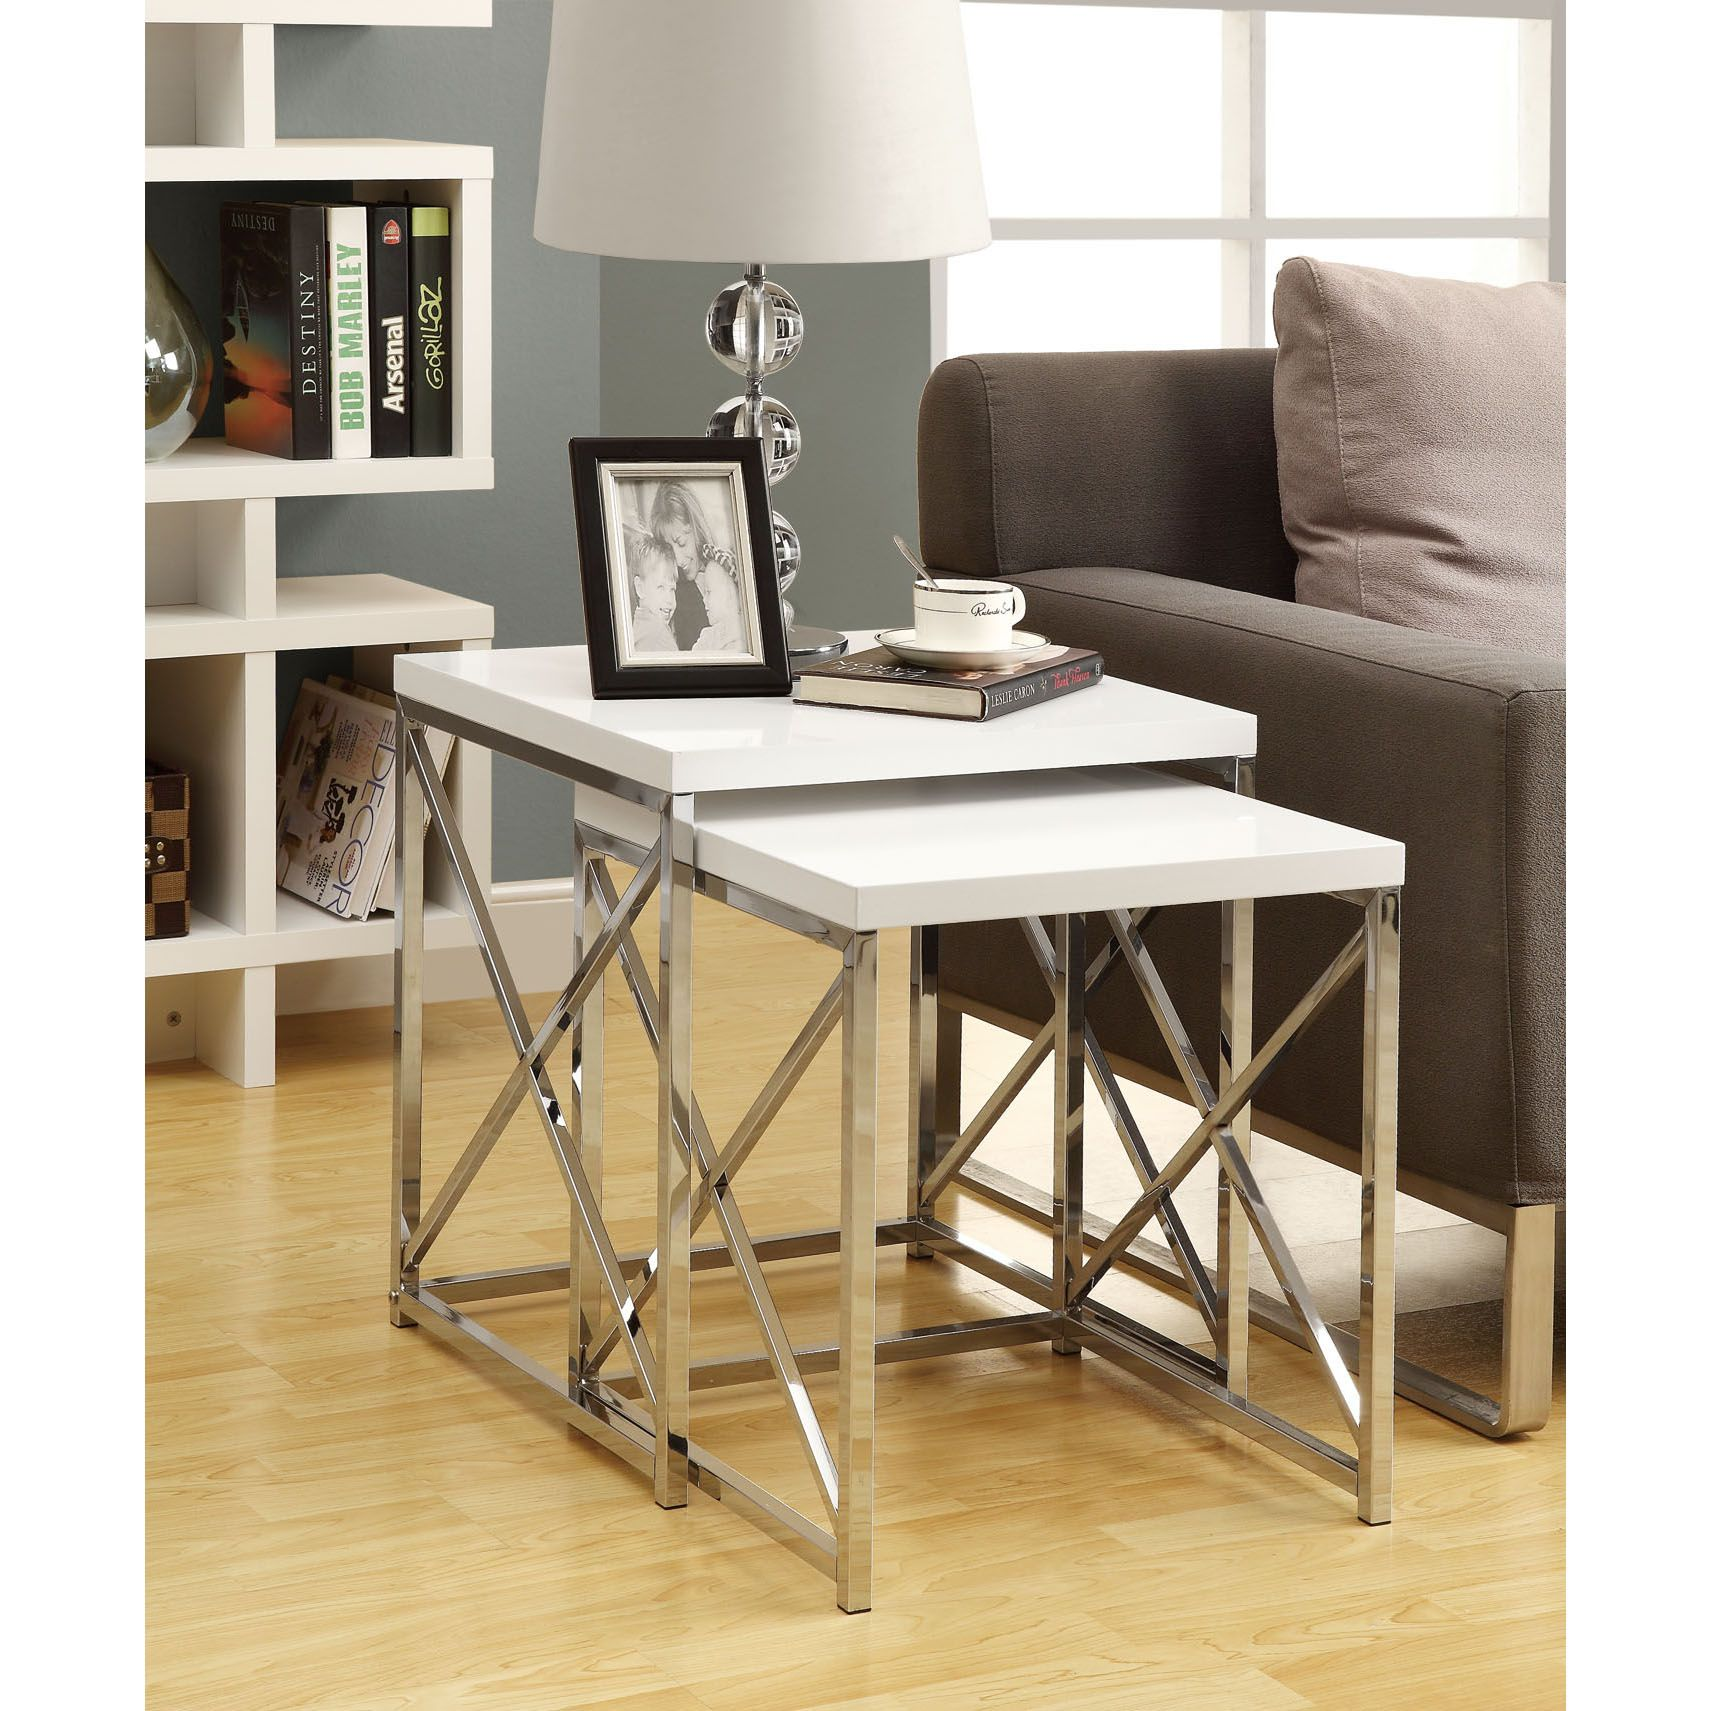 Glossy White/ Chrome Metal 2 Piece Nesting Table Set